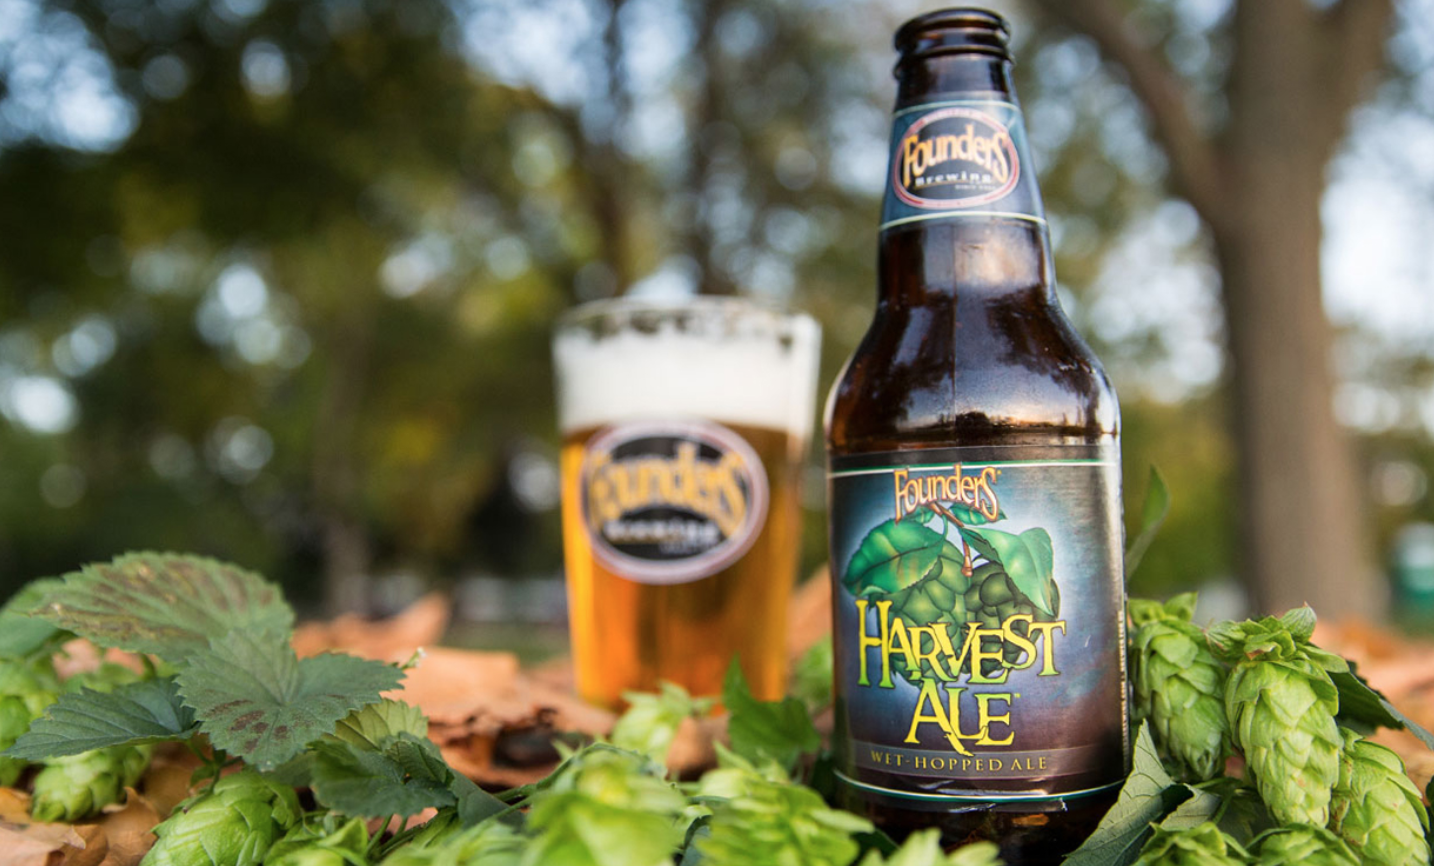 7. Founders Harvest Ale